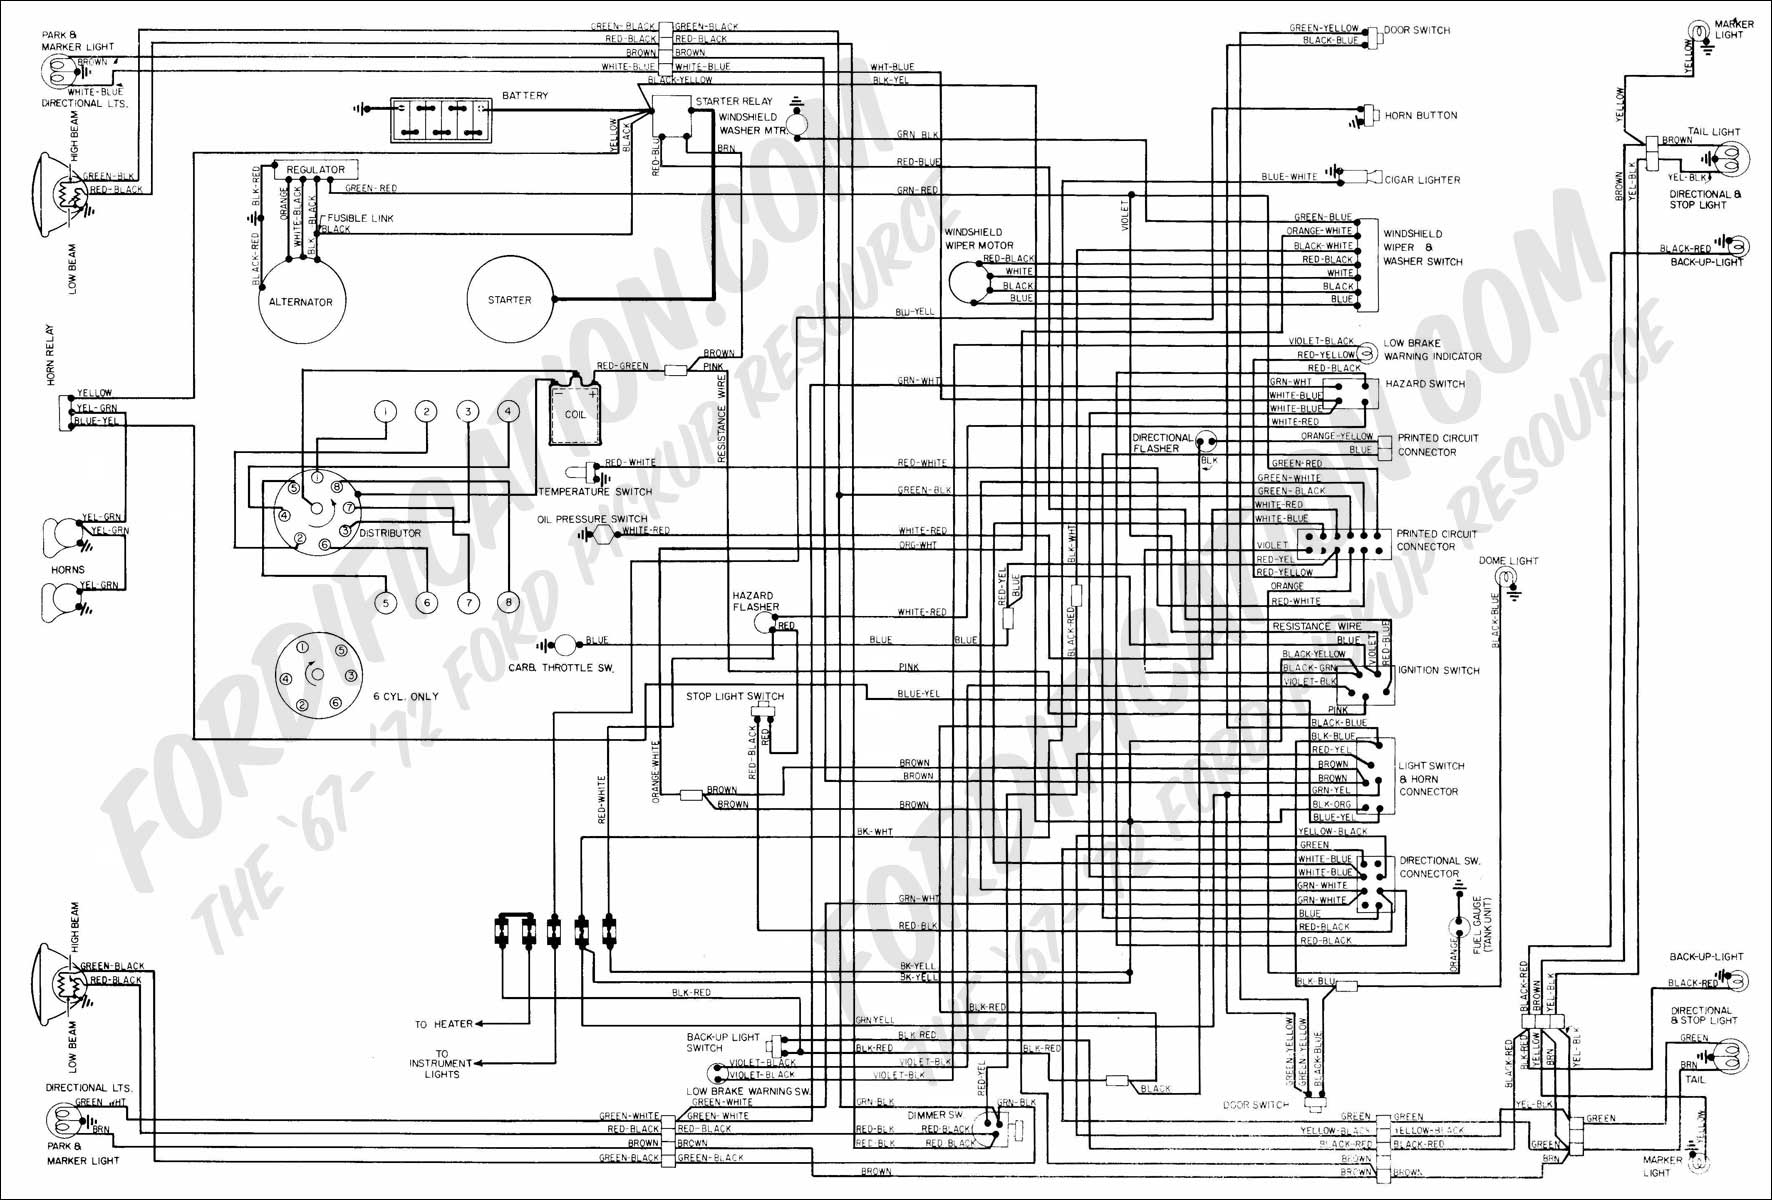 2008 Mazda 3 Stereo Wiring Diagram. Mazda. Wiring Diagrams Instructions